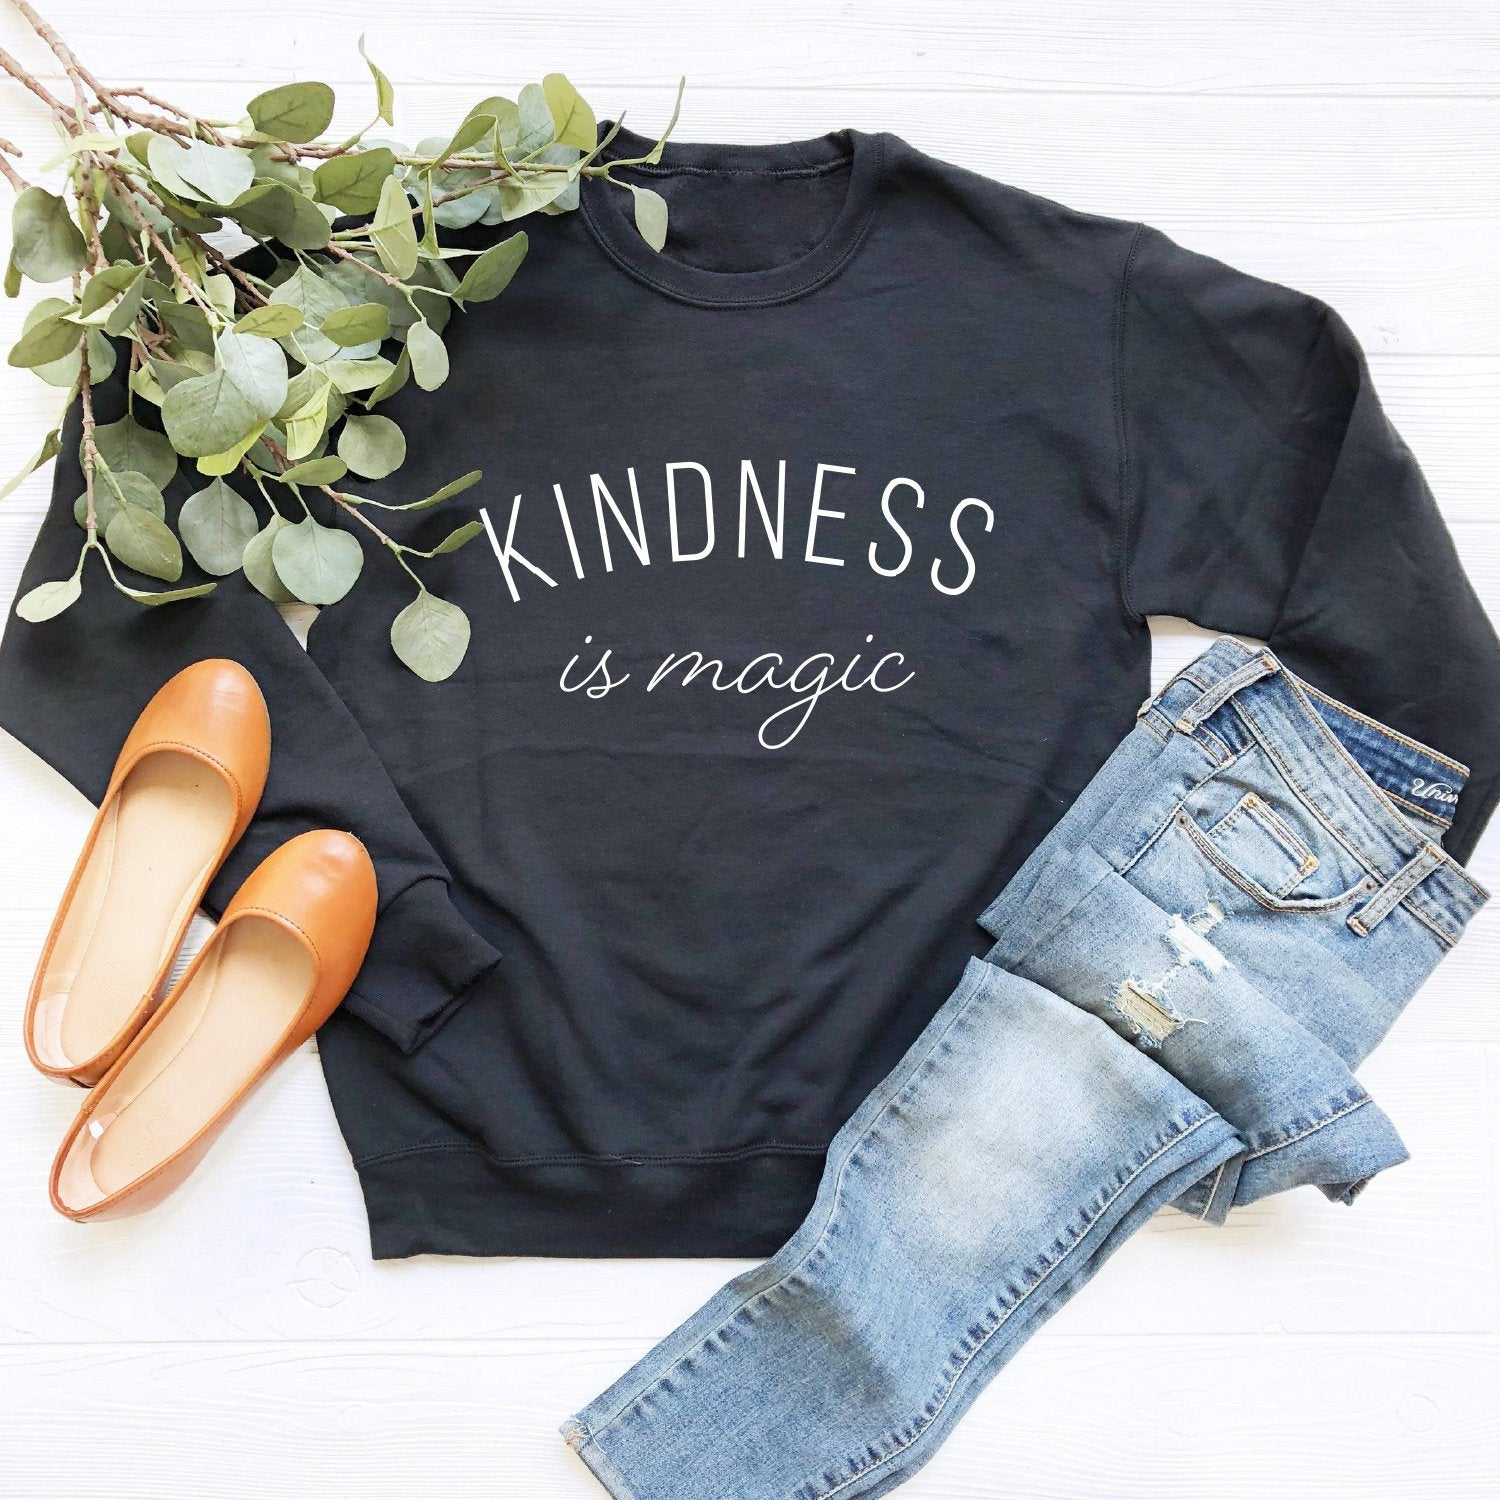 Kindness is Magic Crewneck Sweatshirt (White Curved Text)